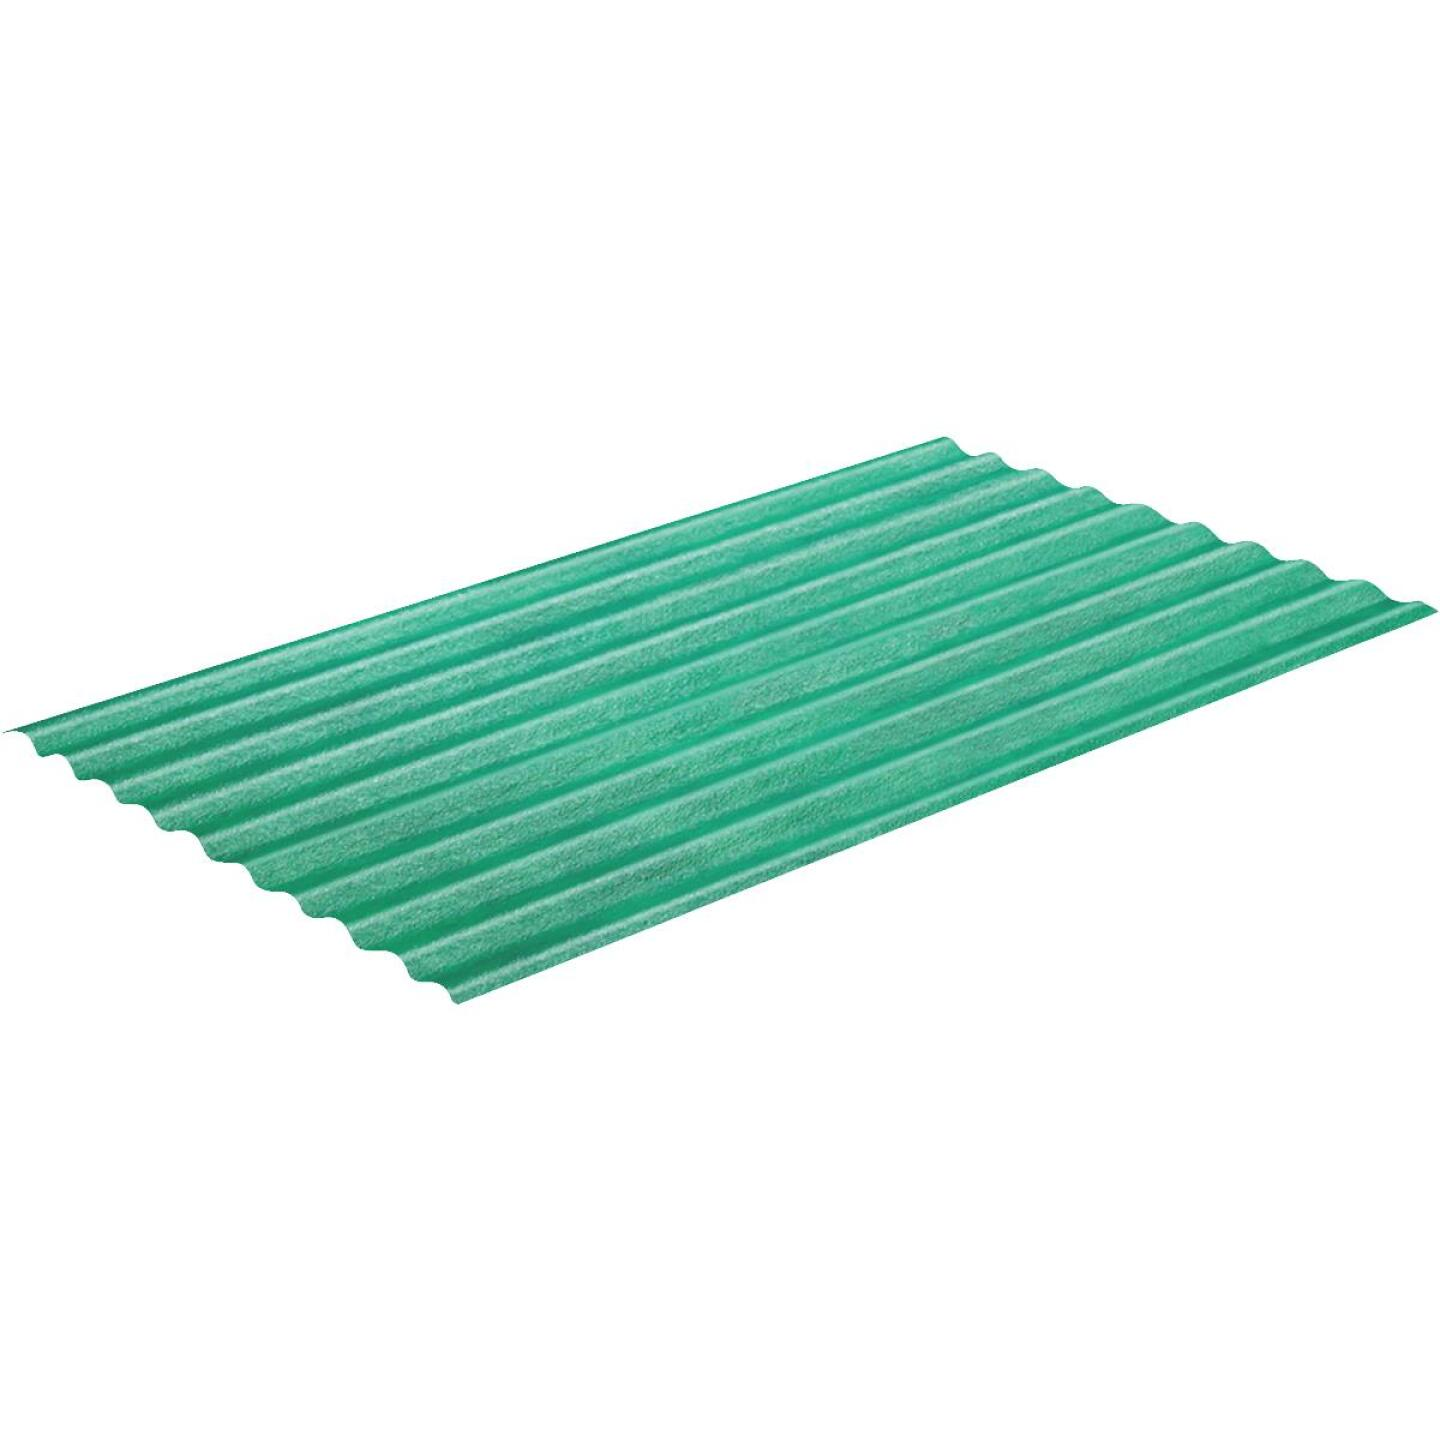 Sequentia WeatherGlaze 26 In. x 12 Ft. Green Round 1-Sided Fiberglass Corrugated Panels Image 1